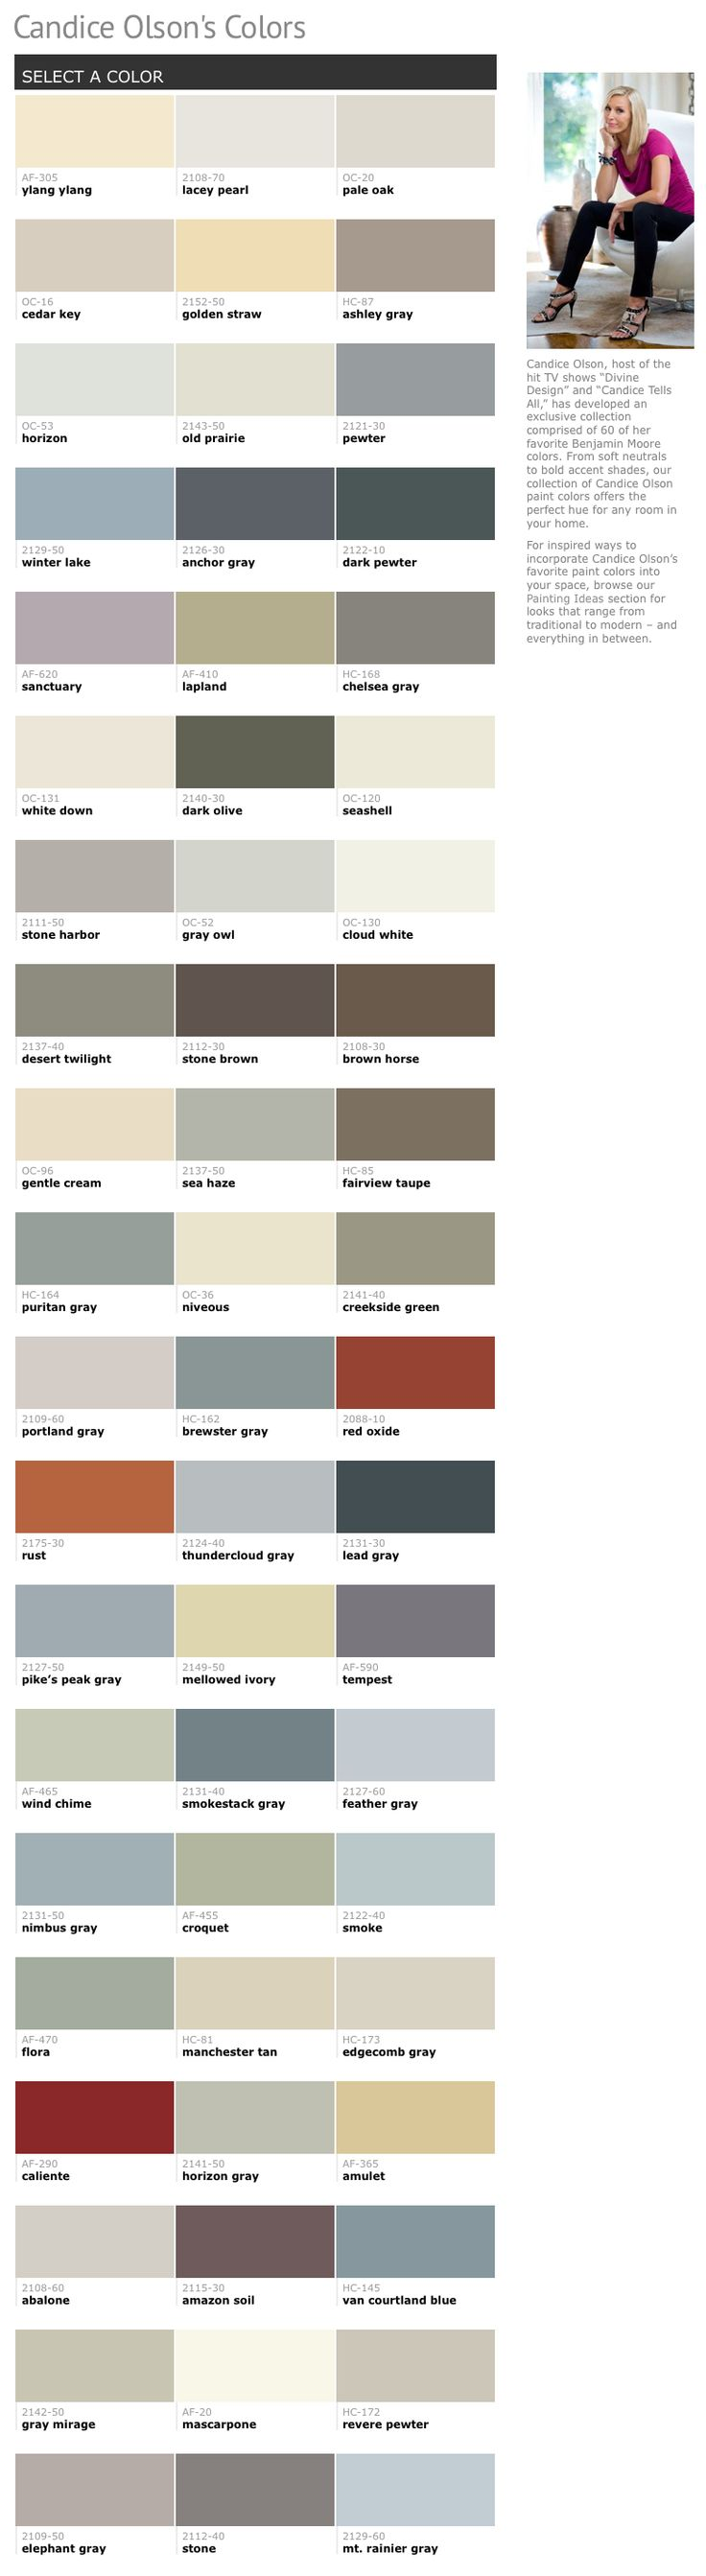 60 Of Candice Olsons Favorite Benjamin Moore Paint Colors Interiors By Color